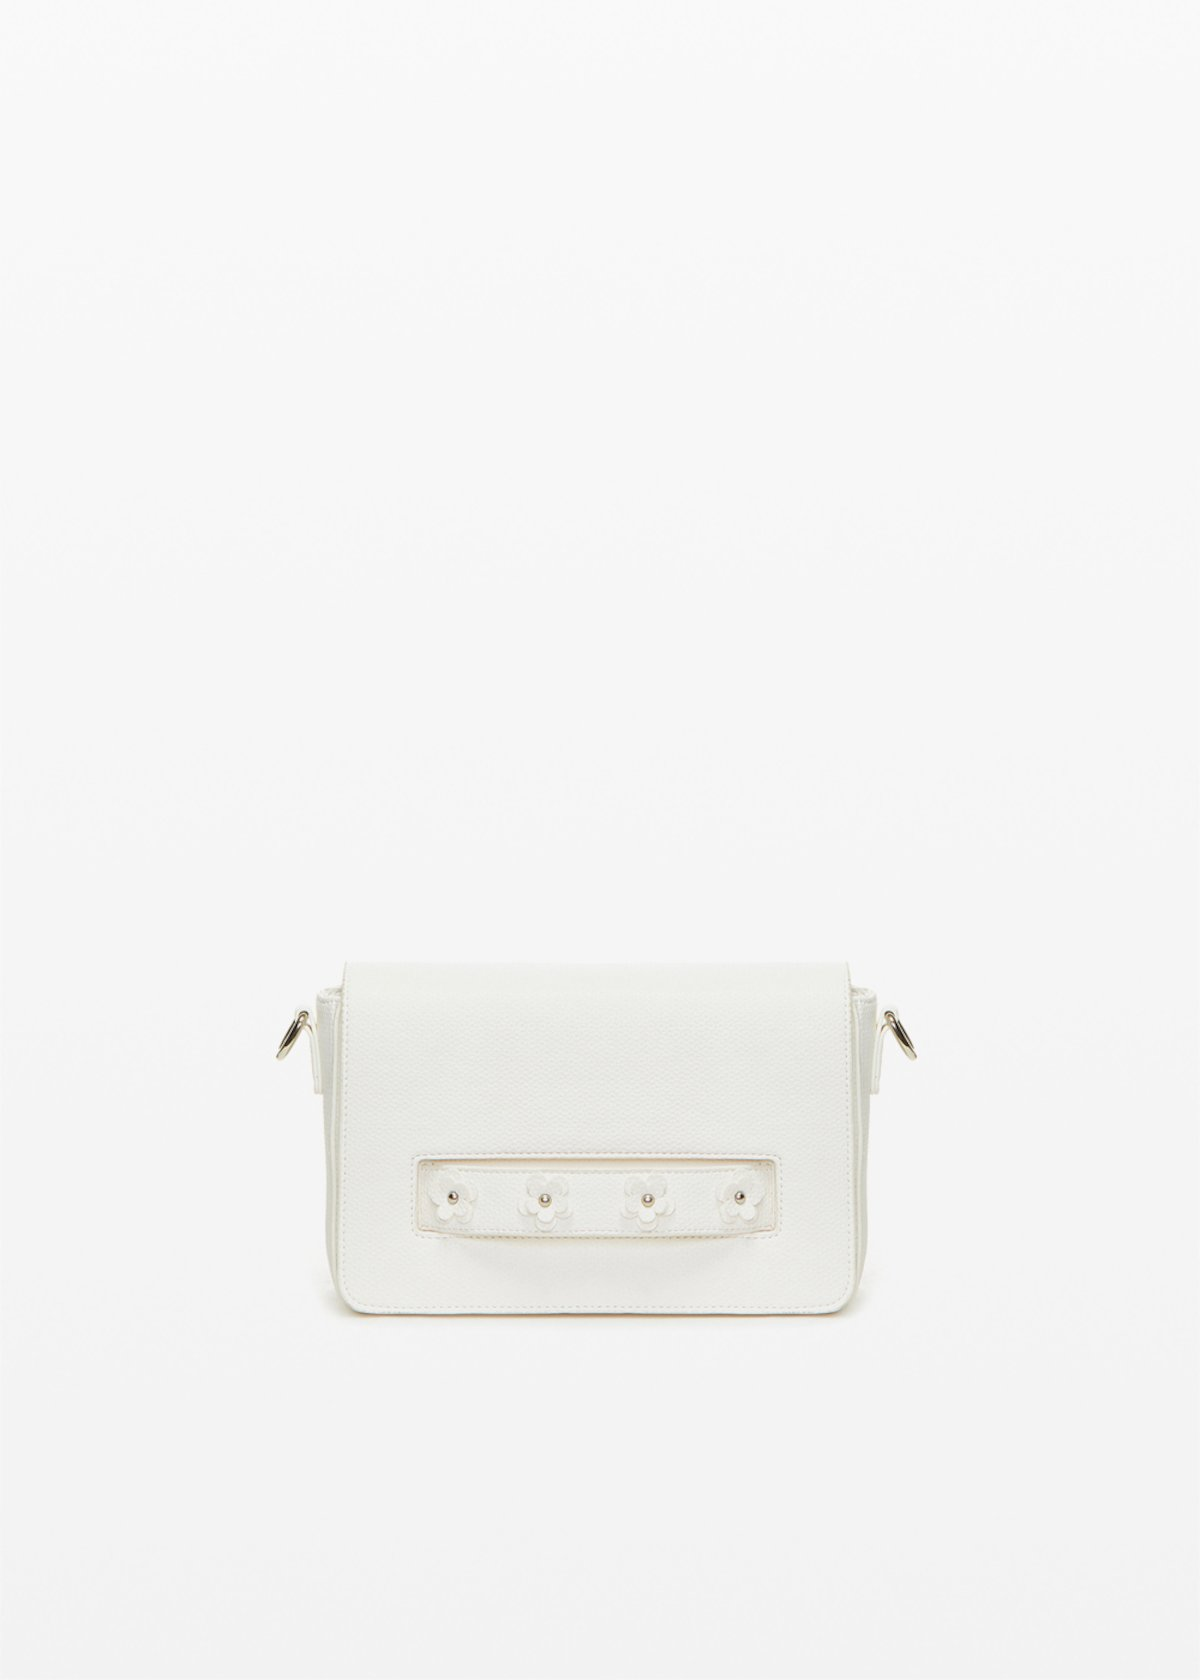 Bay faux leather crossbody bag with flowers detail